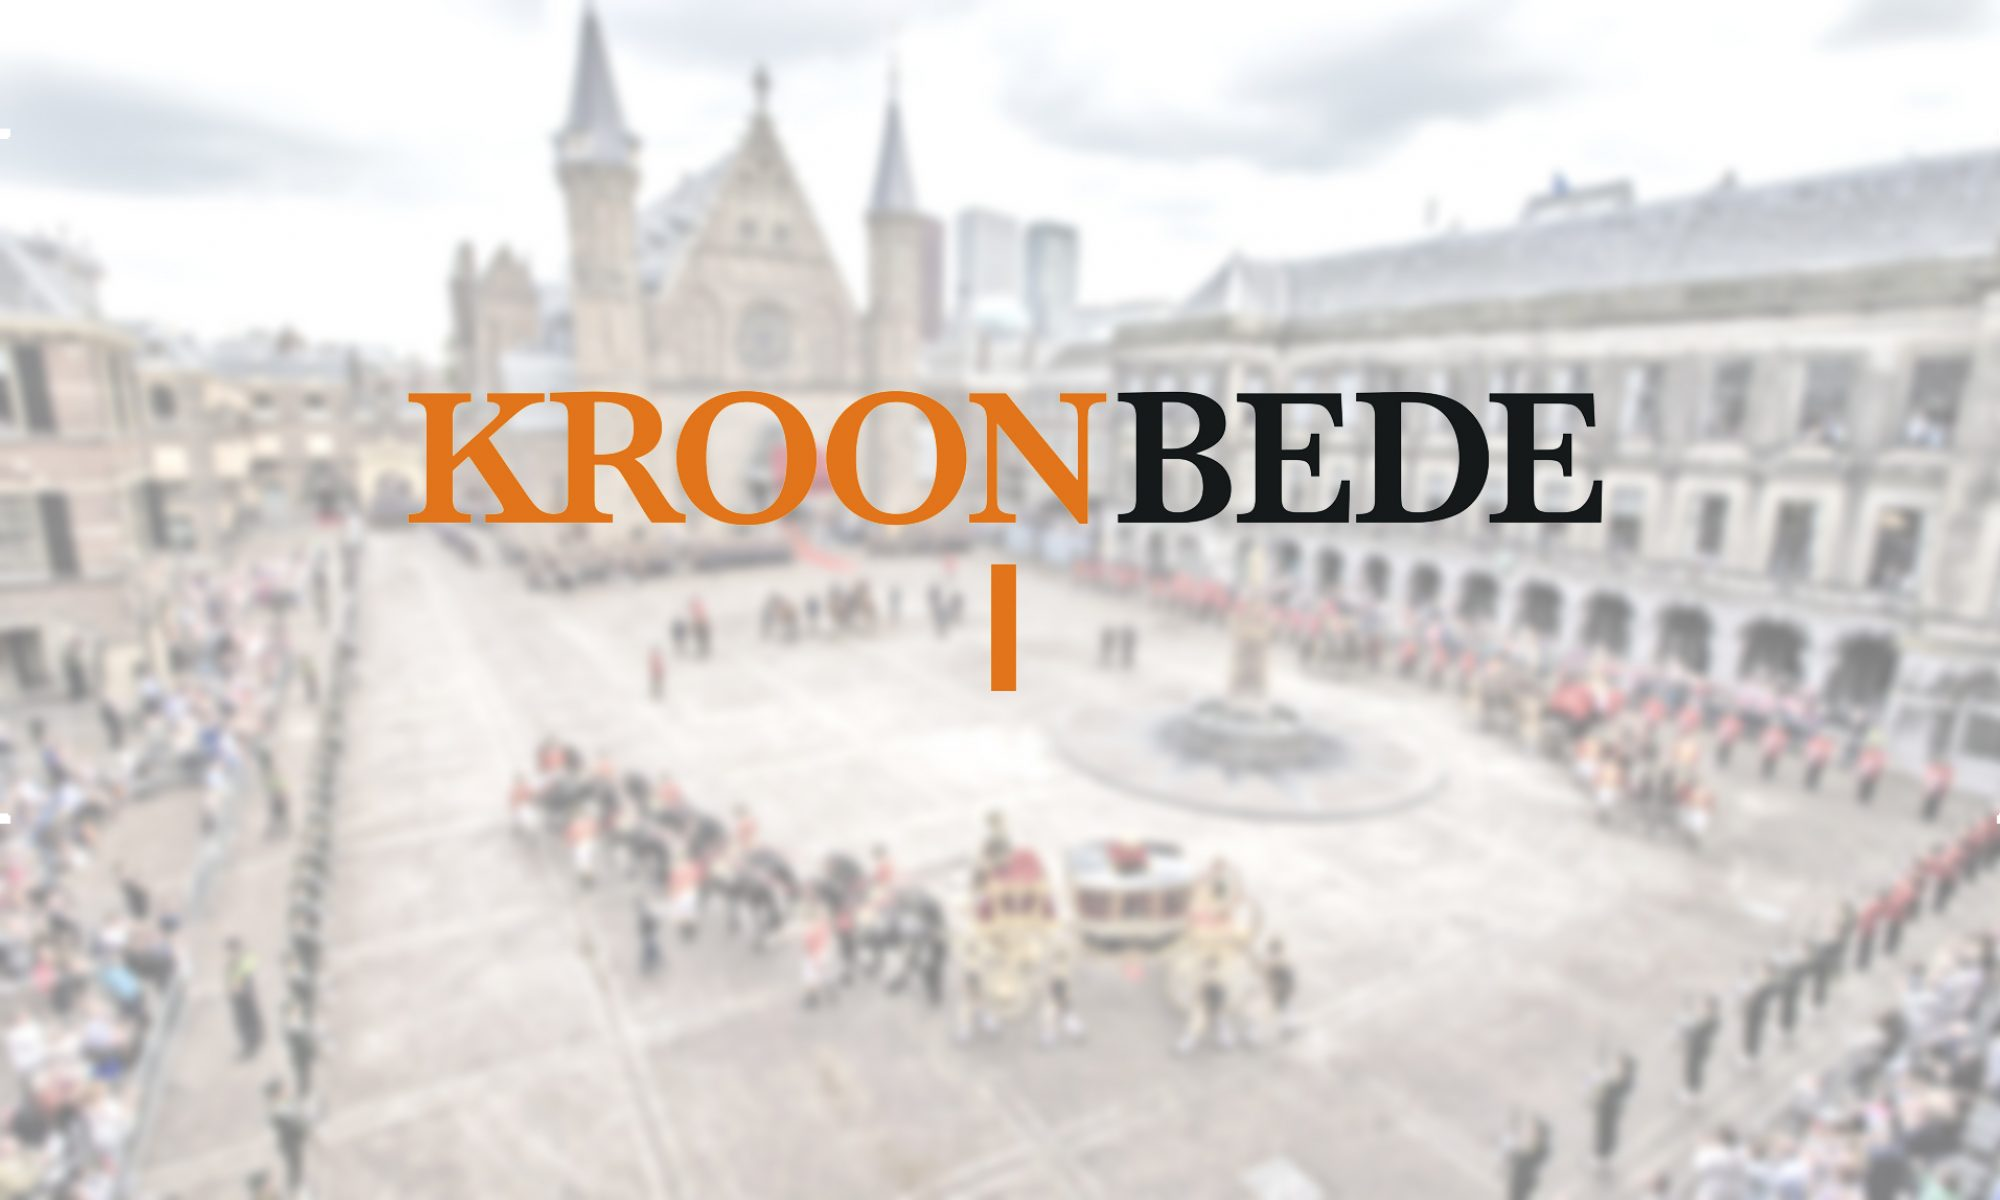 Kroonbede: 10 september 2019